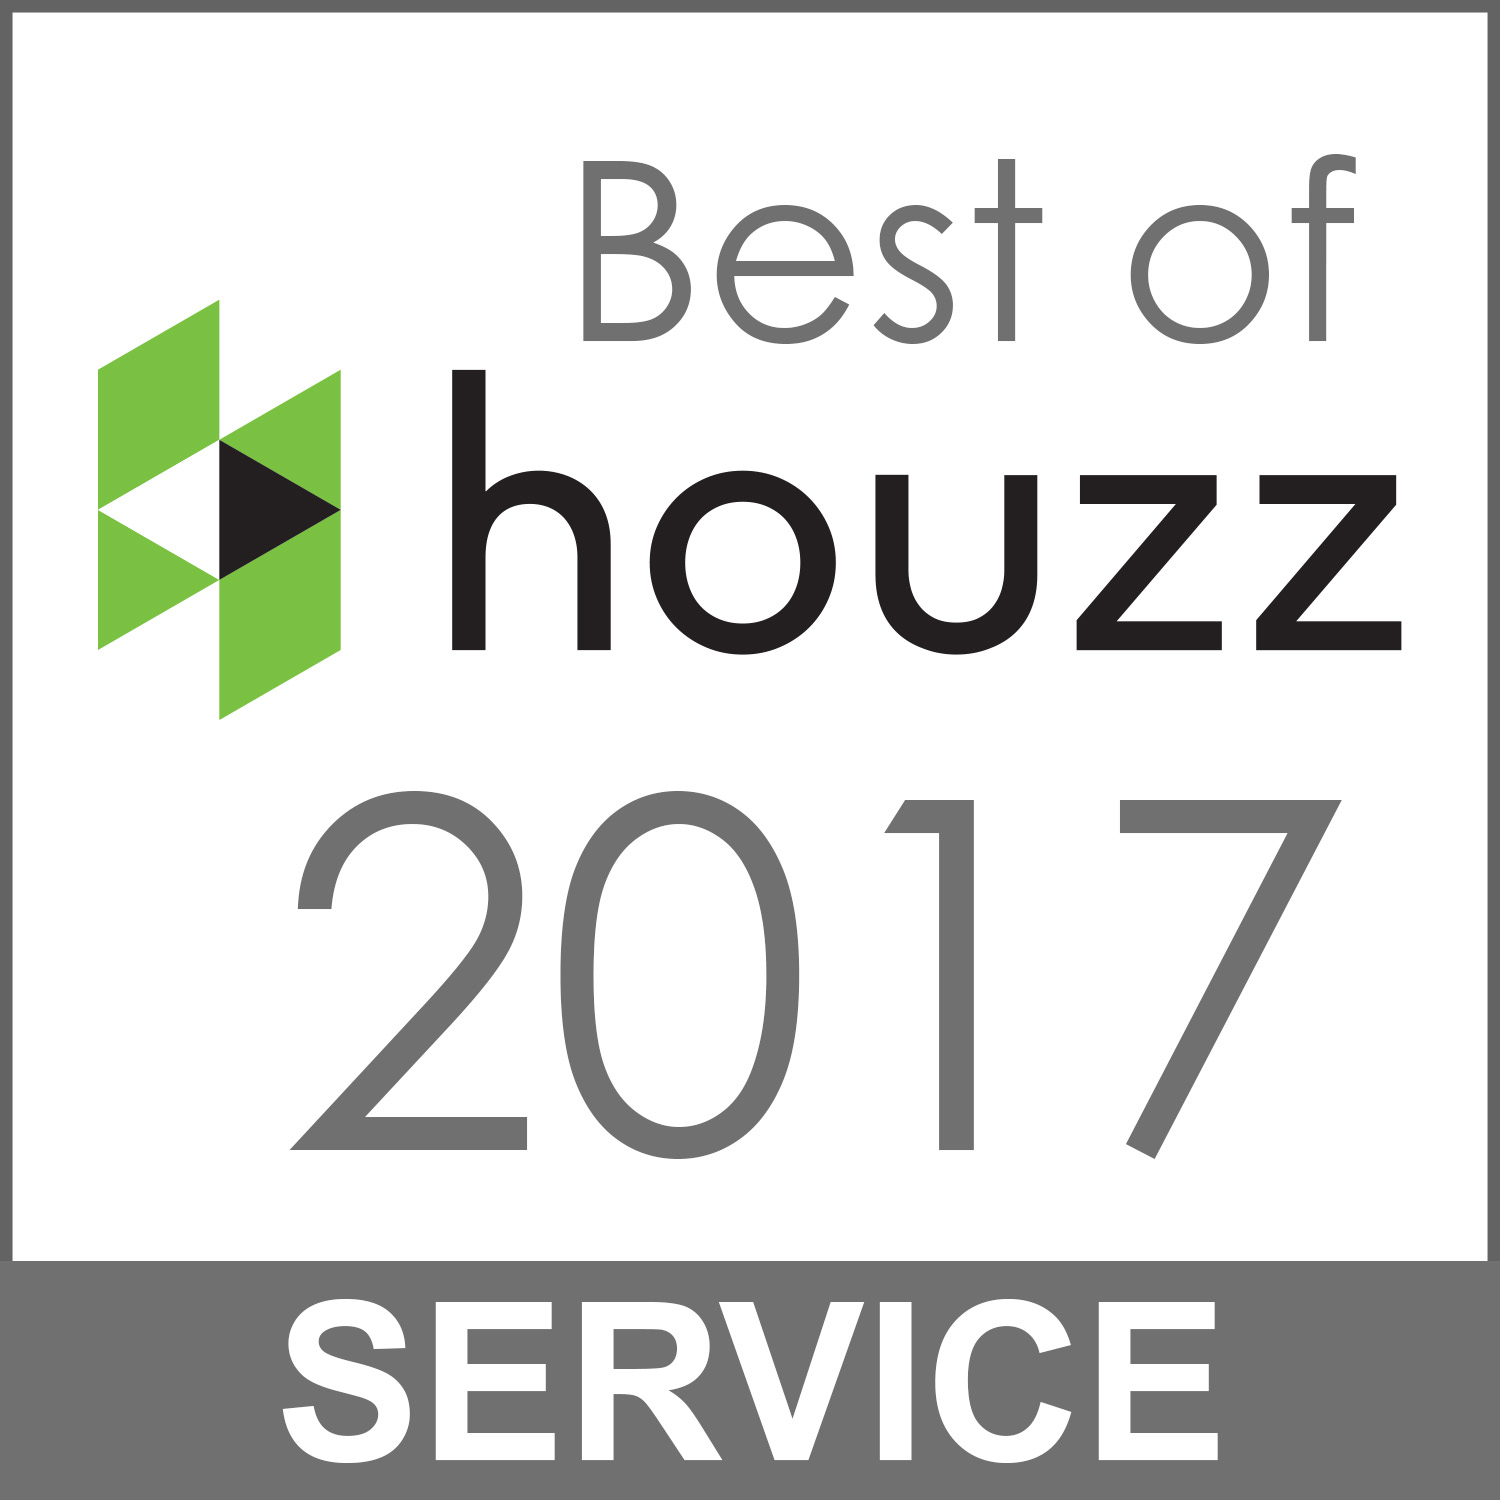 Best of houzz 2017 for service